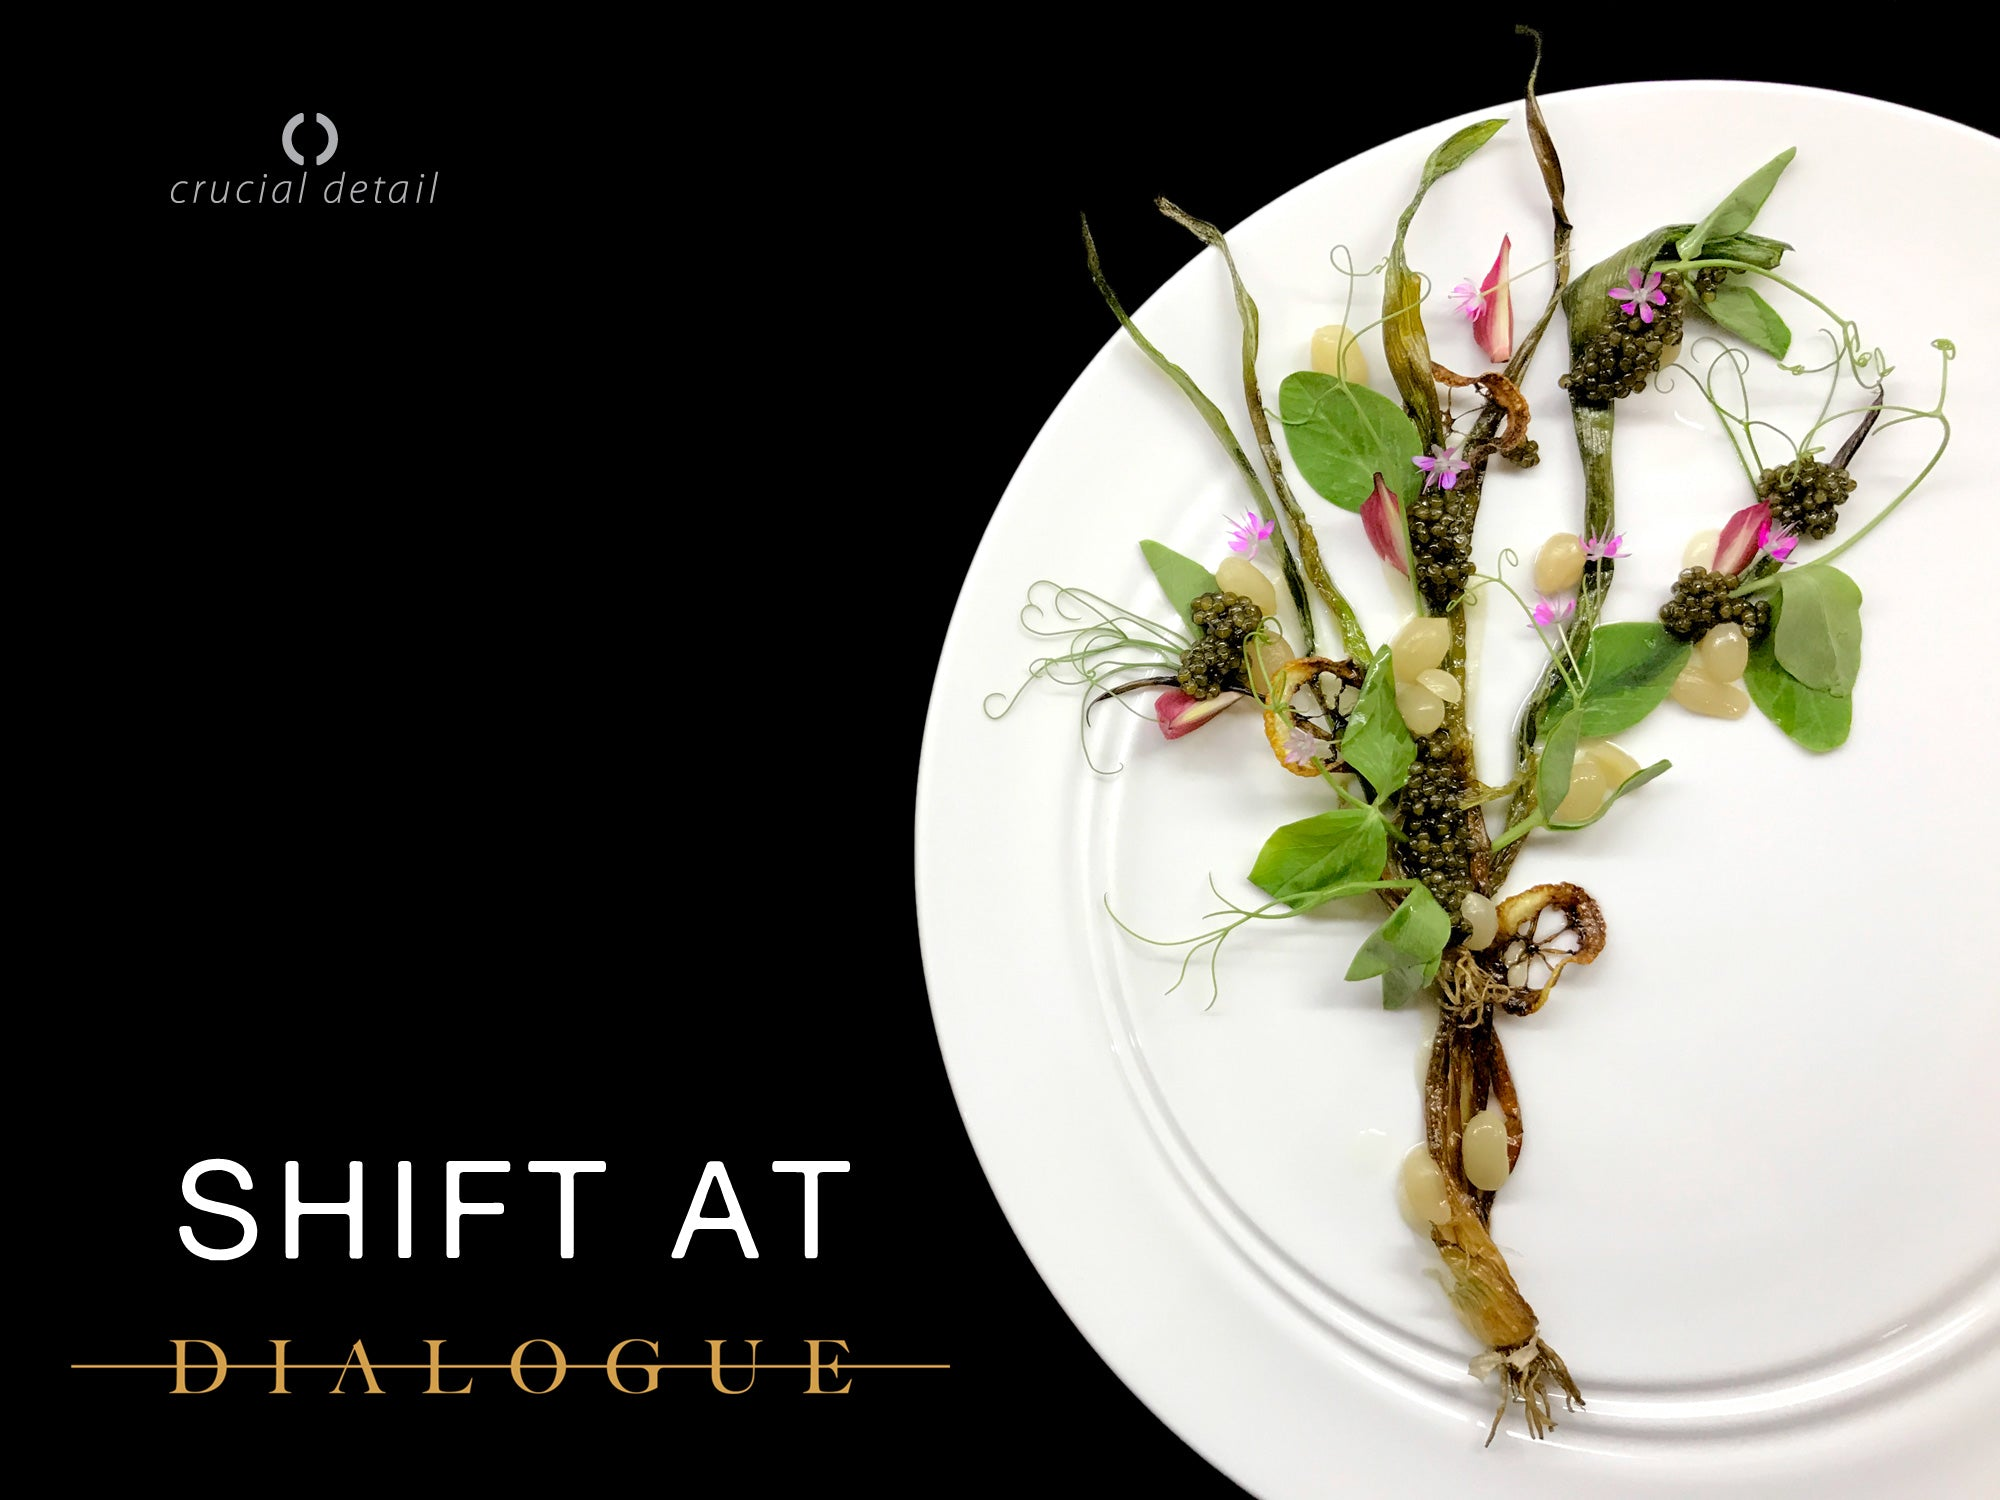 Chef's Perspective: The Shift Collection